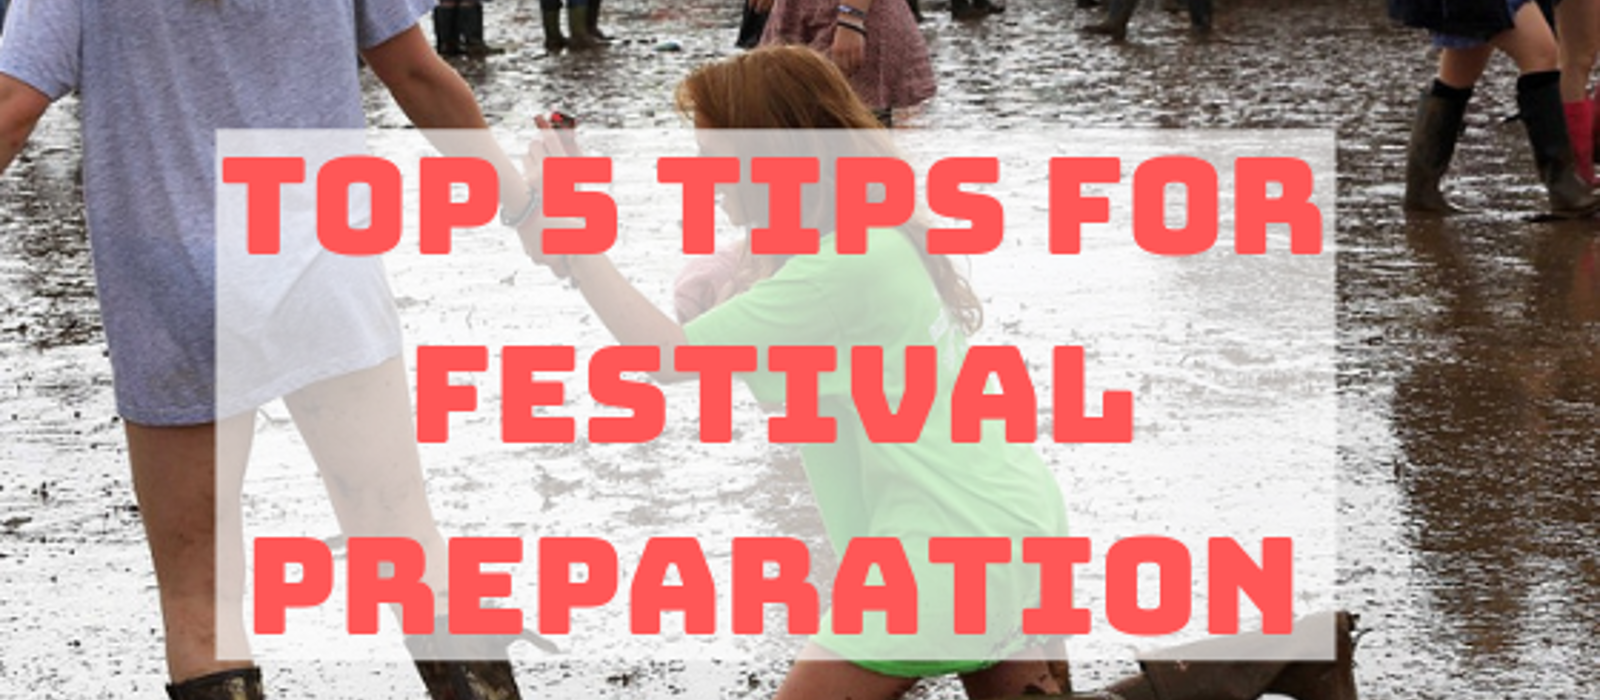 5 Top Tips For Festival Preparation